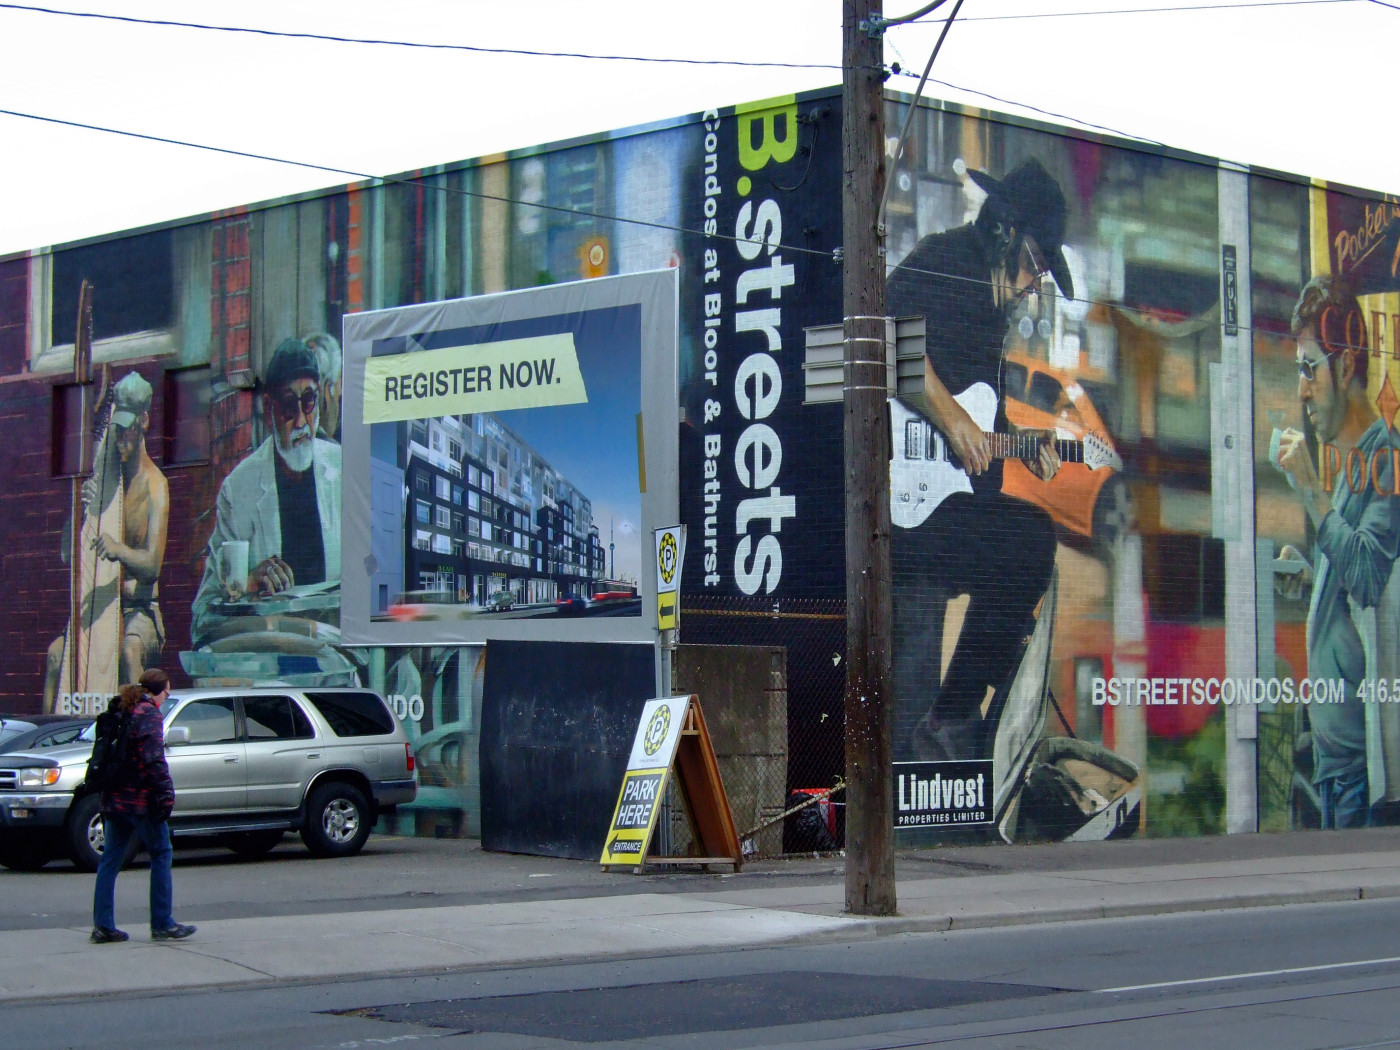 """Figure 4. """"B.streets"""" proposed site, 2011, will occupy the former Loretto College building at Central Tech School at Bathurst, near Bloor. The project launched with unusual fanfare, including a prominent piece in the Toronto Star in September 2011. While conceptual mural art depicts a lively street life reminiscent more of New Orleans or Portland than of Toronto, the inset illustration of the edifice shows no trace that the """"B.streets"""" name will survive once construction is completed. [Idlewild]"""